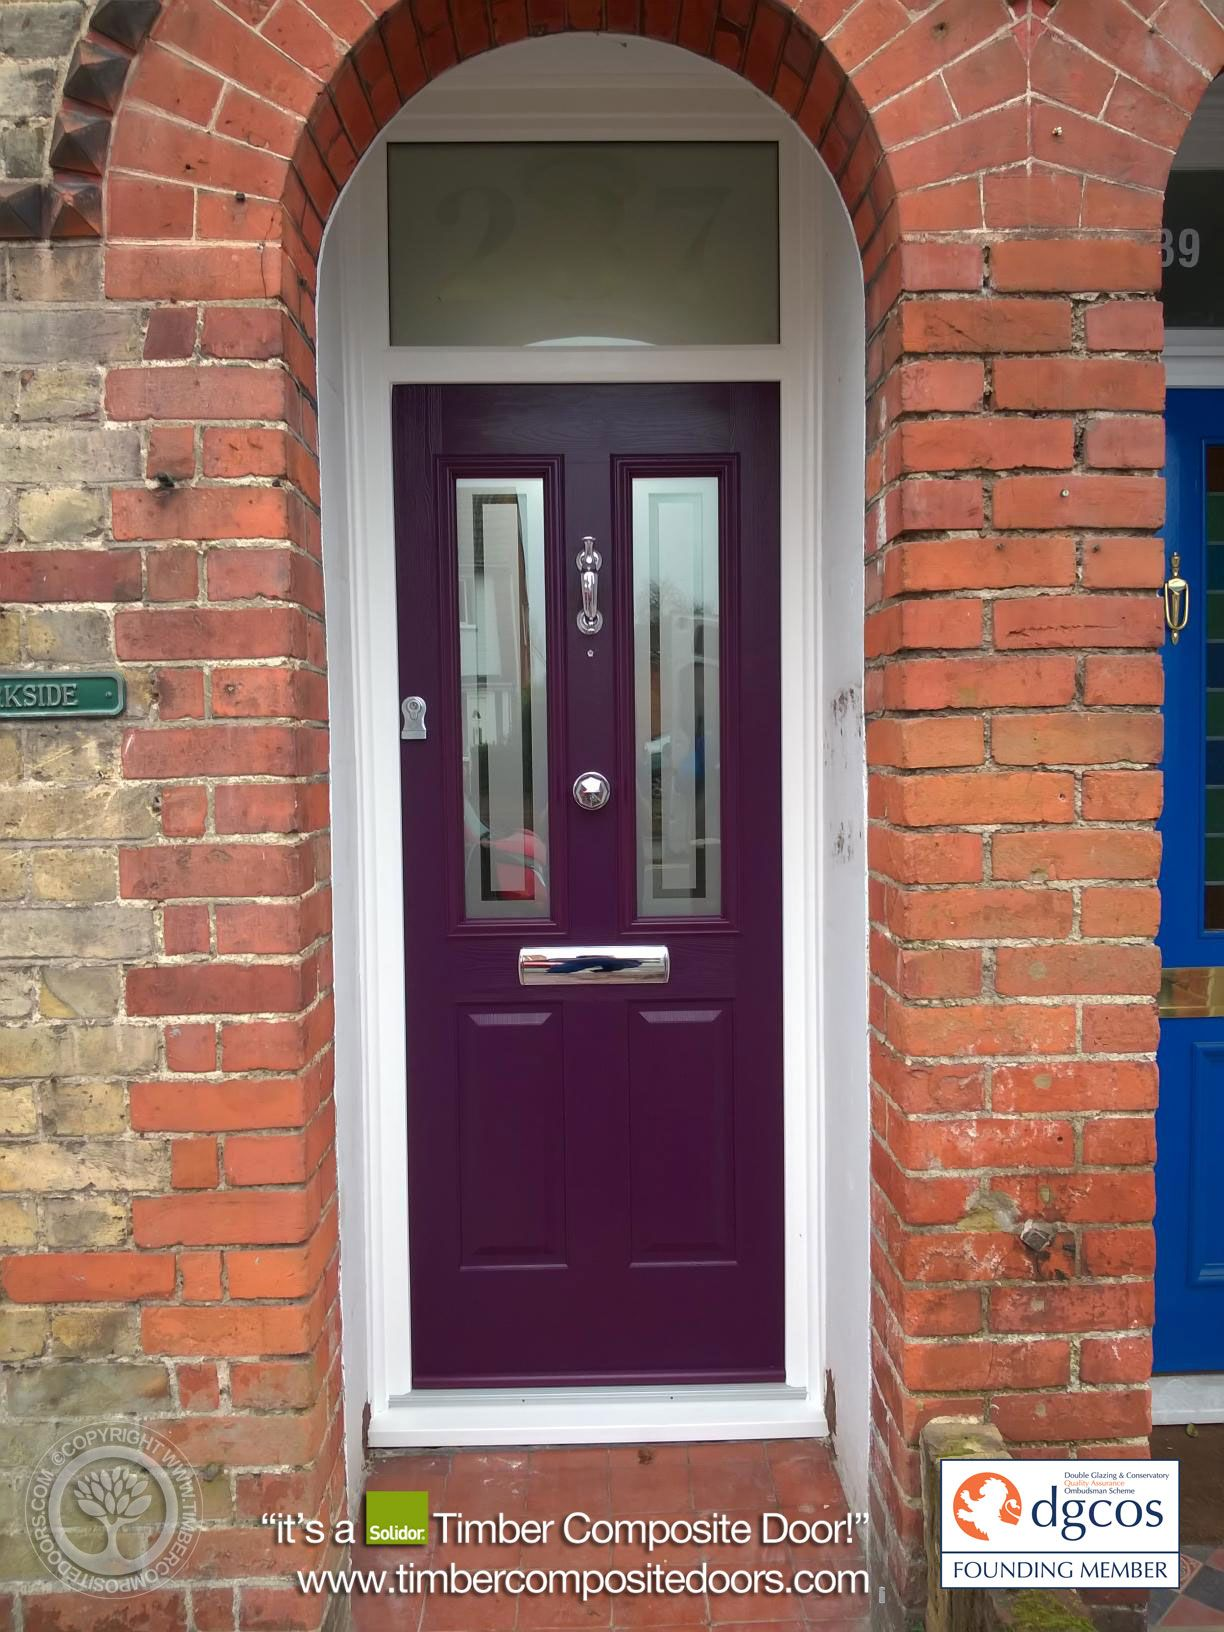 Solidor Timber Composite Doors 12 Months Interest Free Credit By